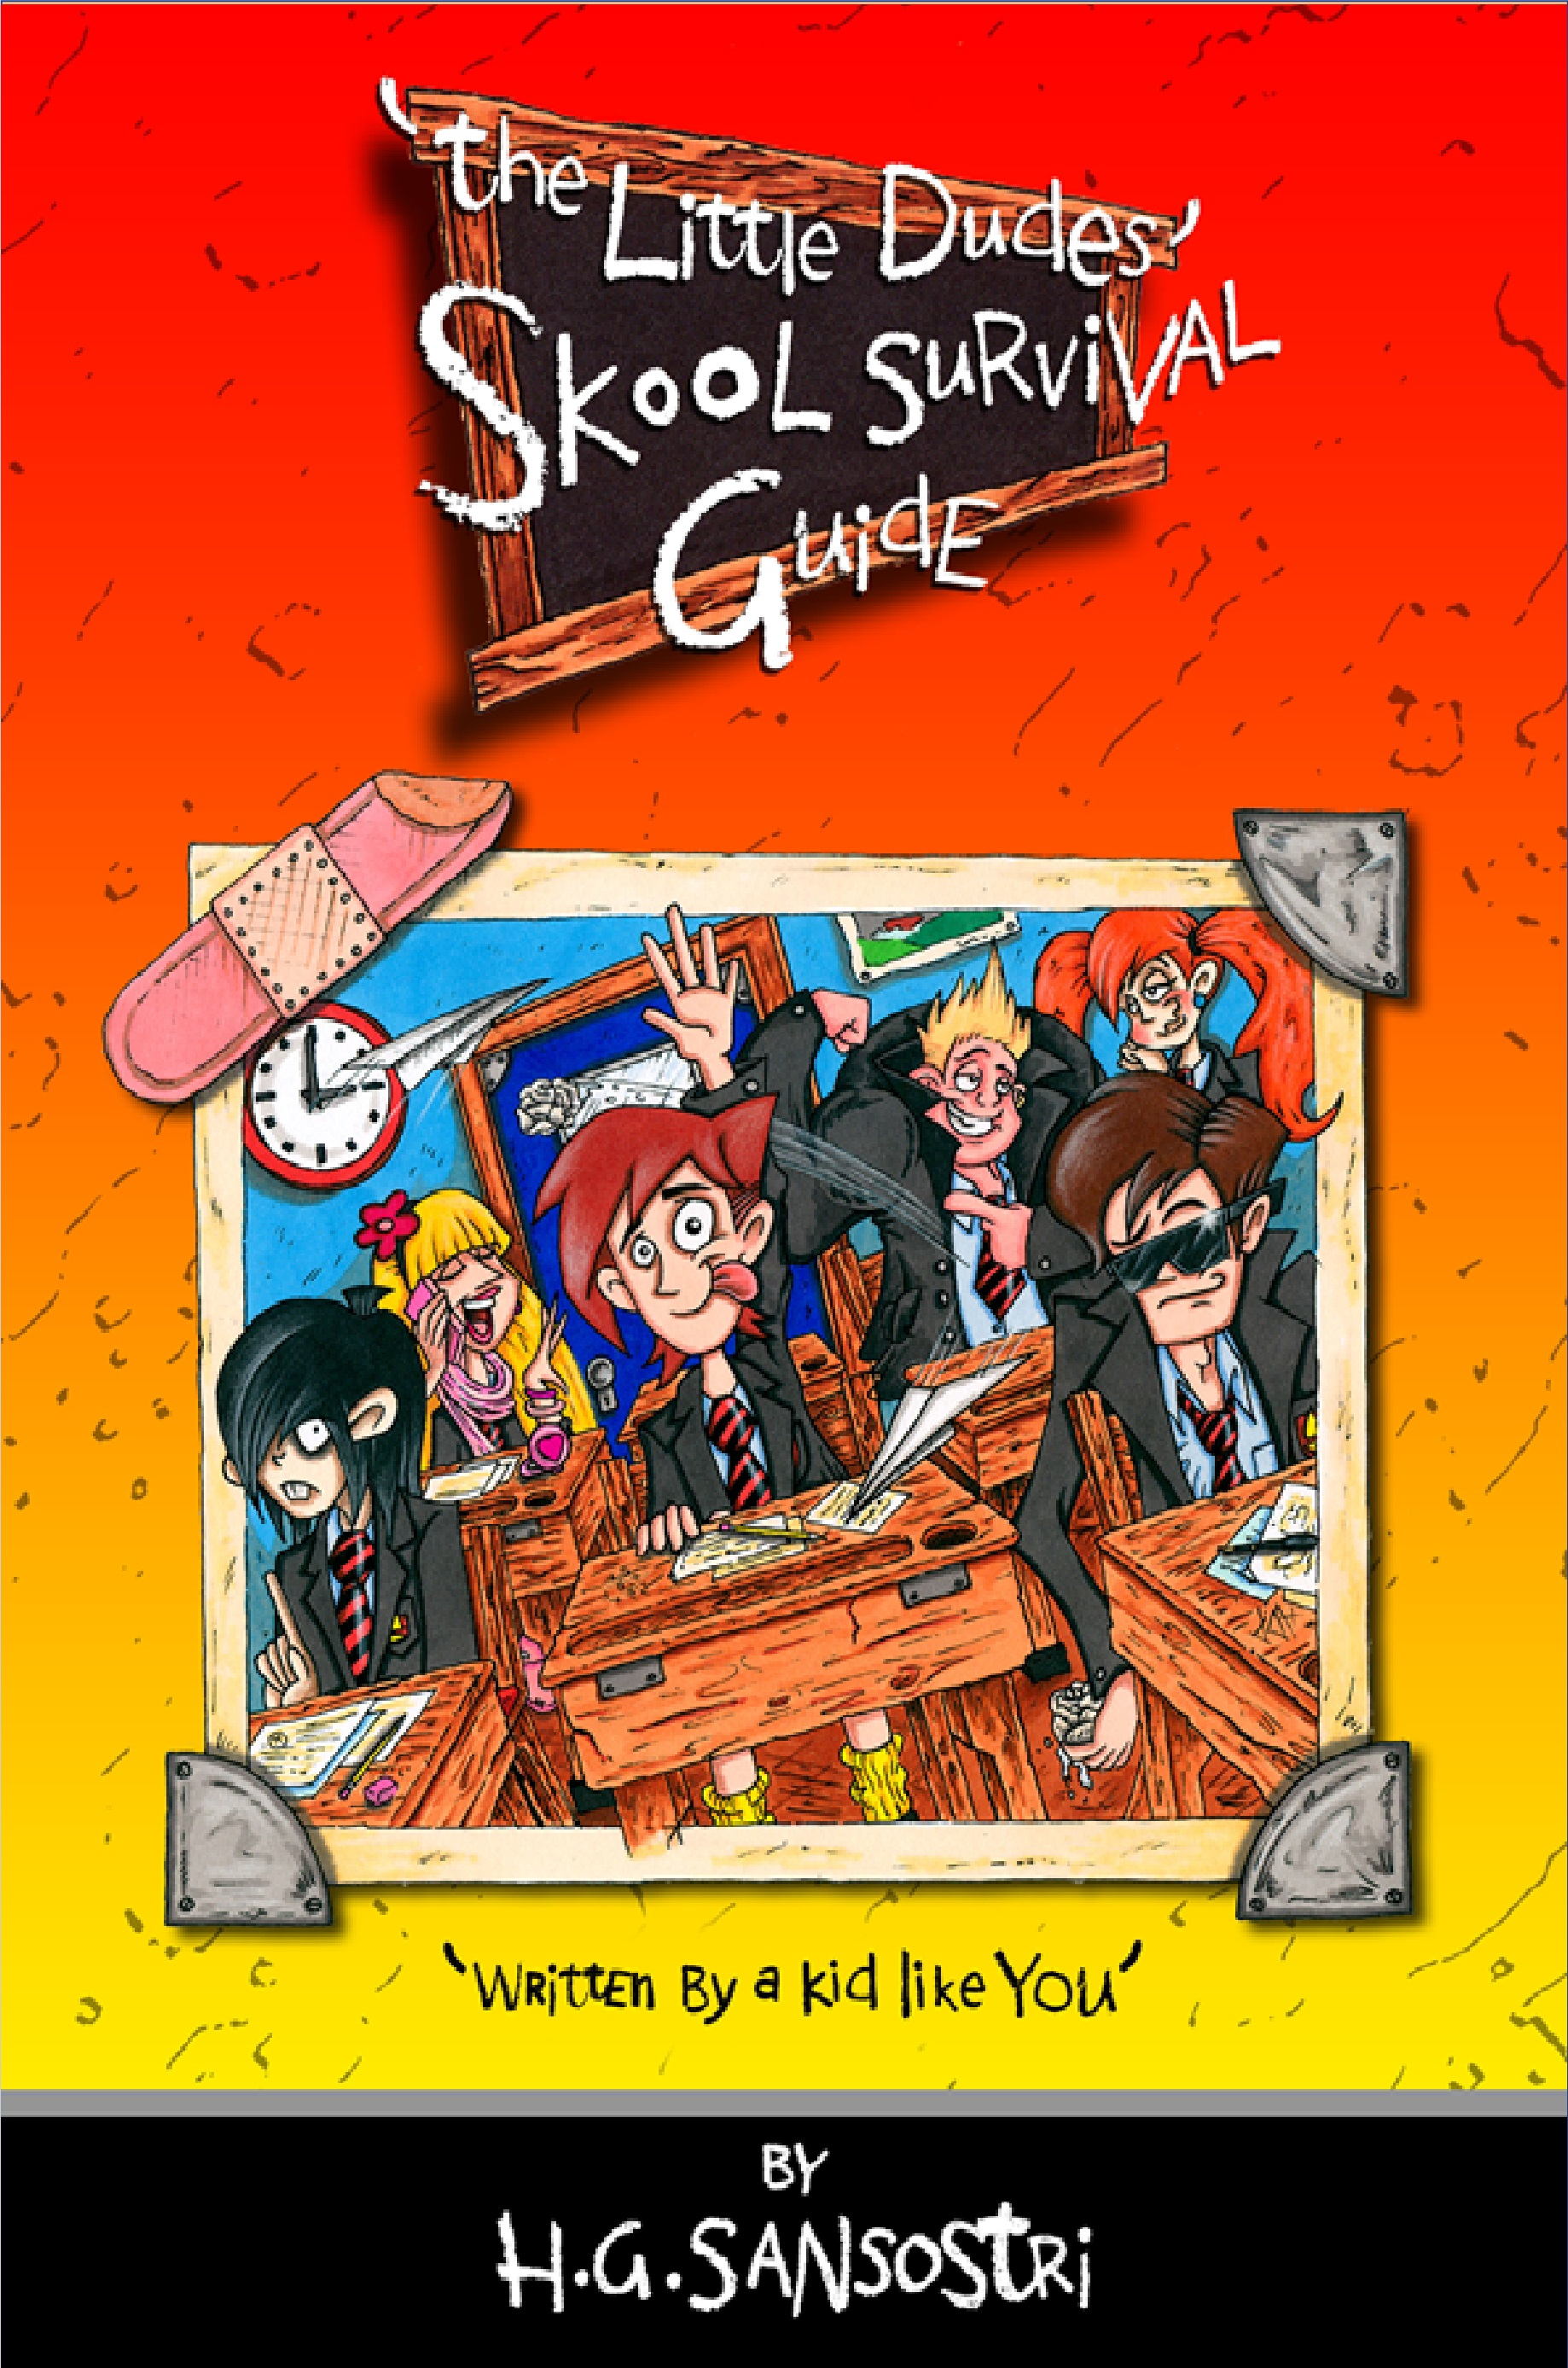 The Little Dudes Skool Survival Guide